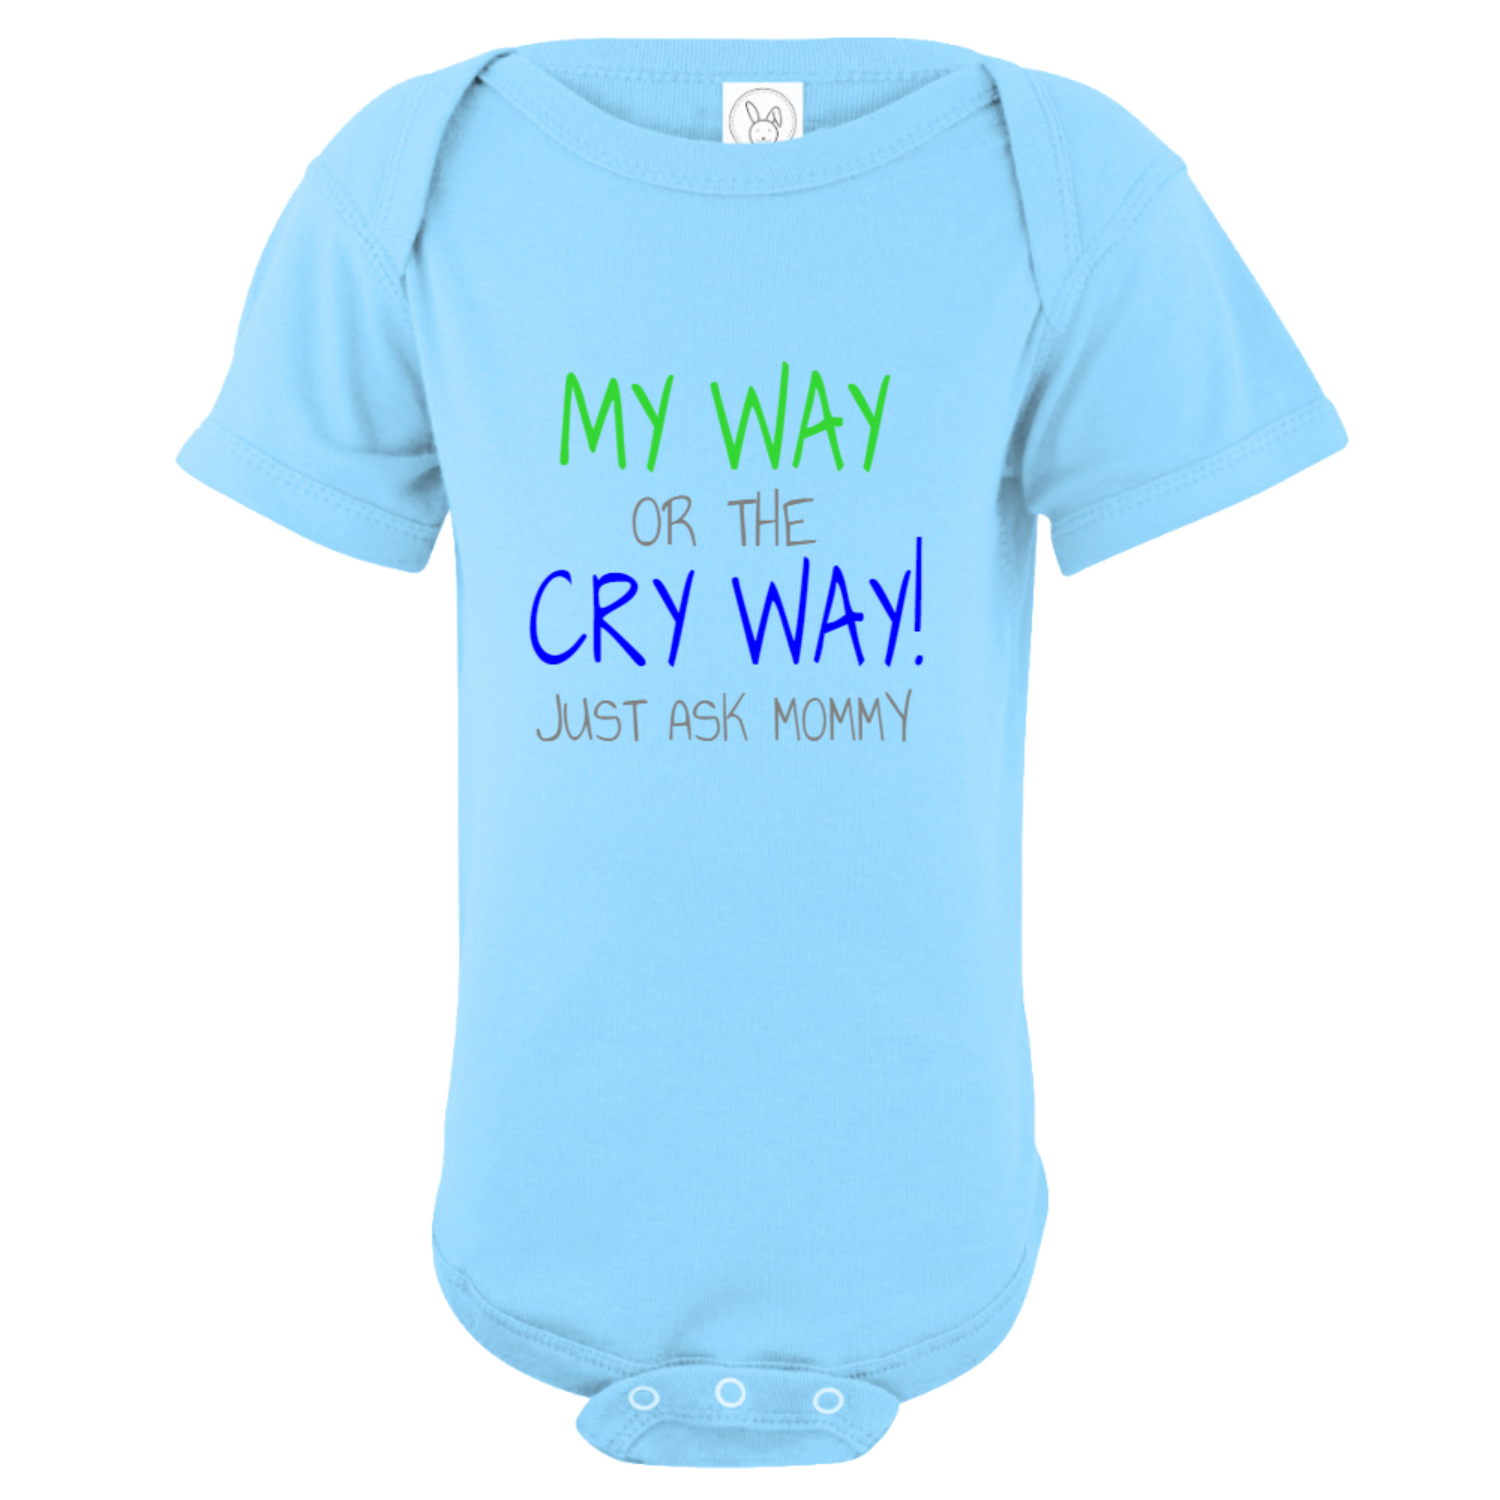 My Way Or The Cry Way Baby Bodysuit Light Blue